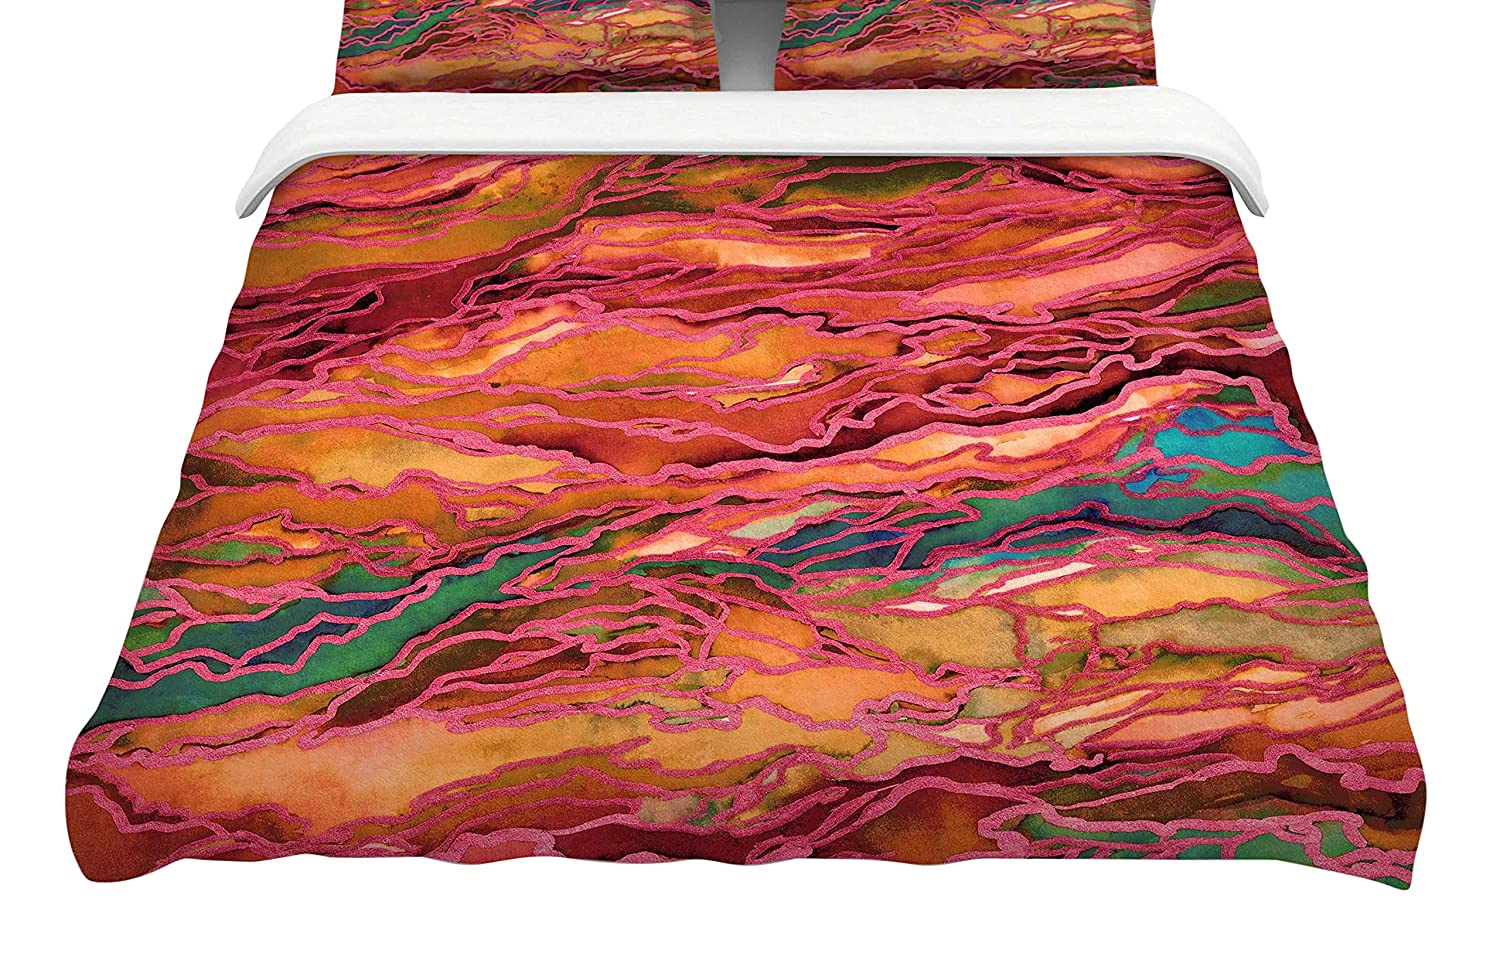 Kess InHouse Jeff Ferst View from The Foothills King Cotton Duvet Cover 104 x 88,